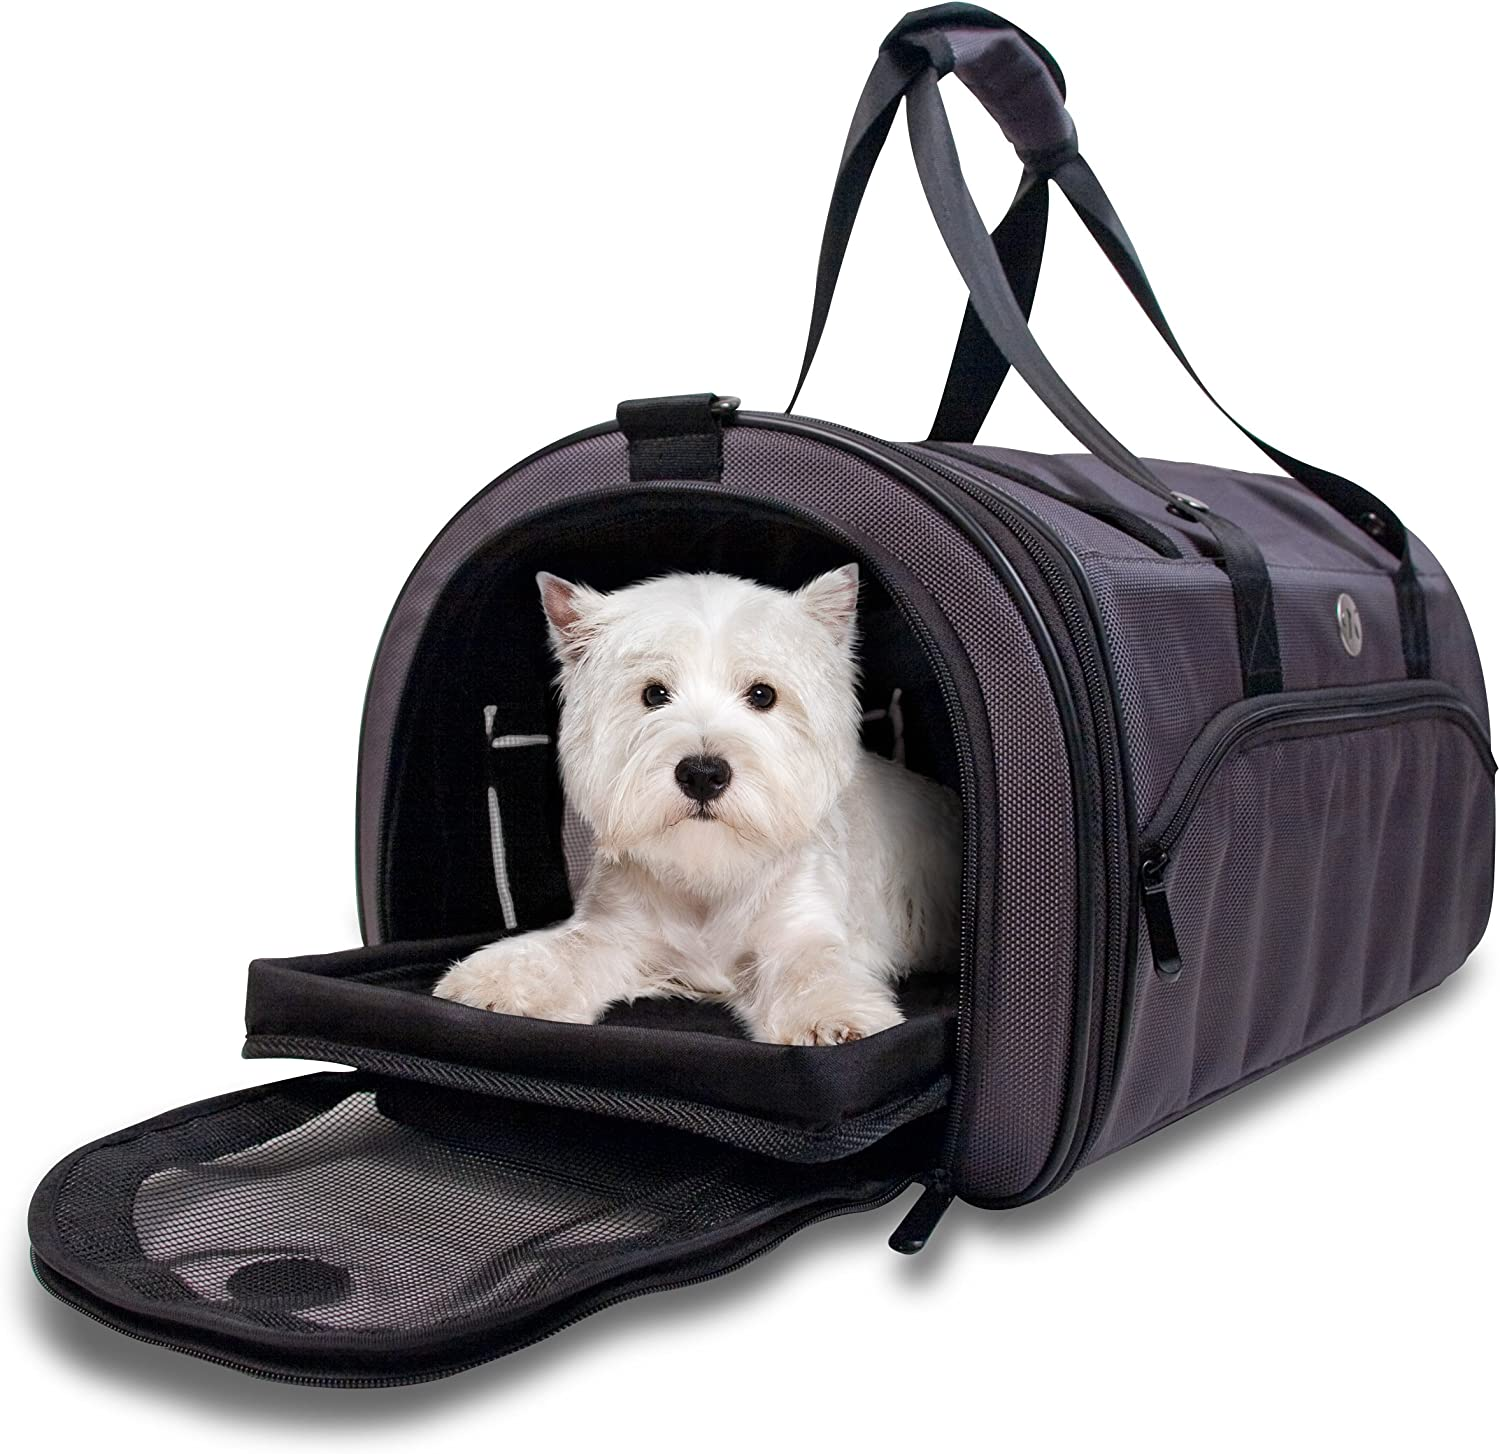 Kobi Pet Carrier - Soft Airline Charcoal Approved Sided Selling and selling Denver Mall Smal